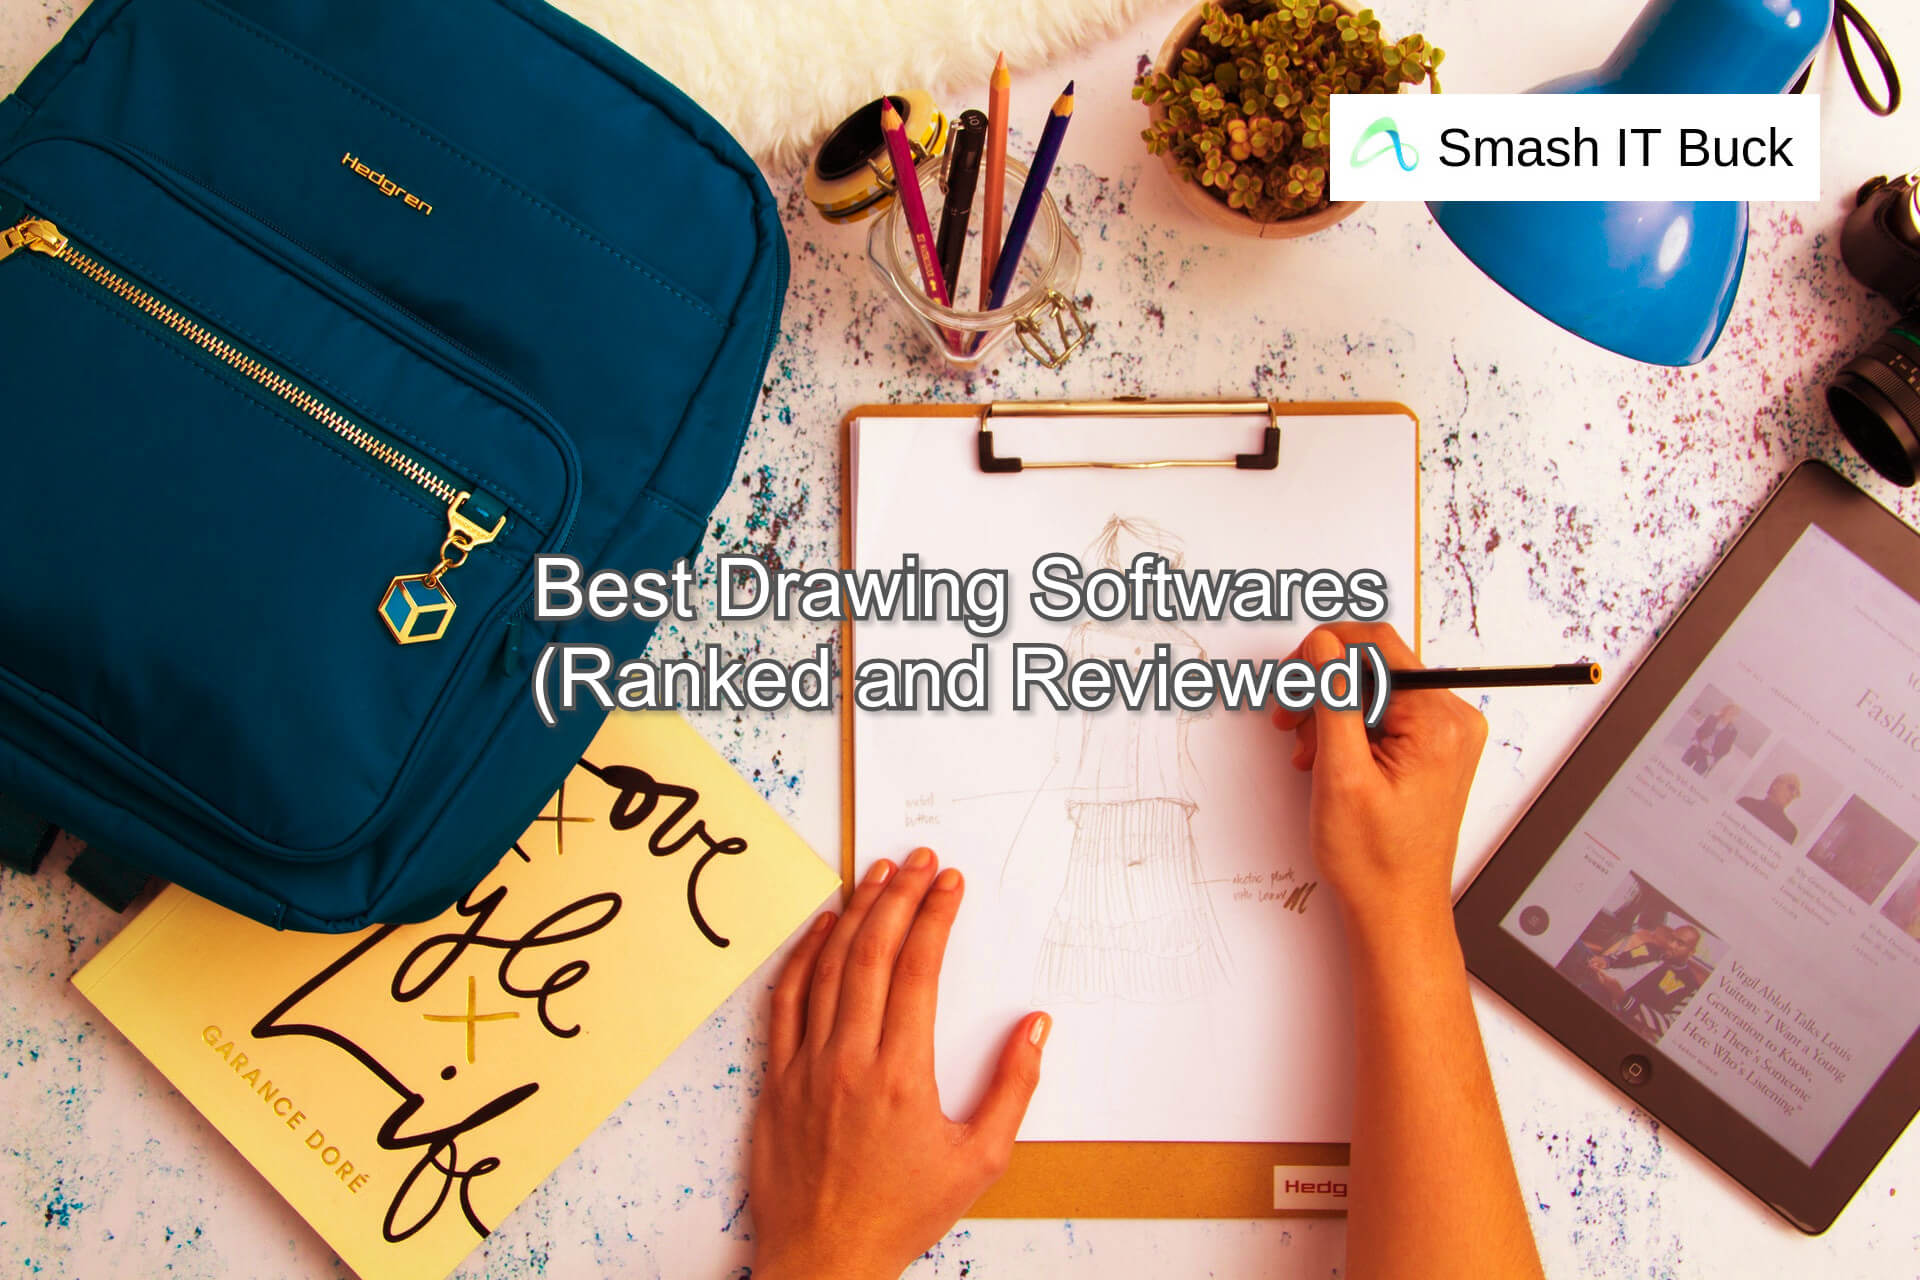 Best Drawing Software of 2021 (Ranked)